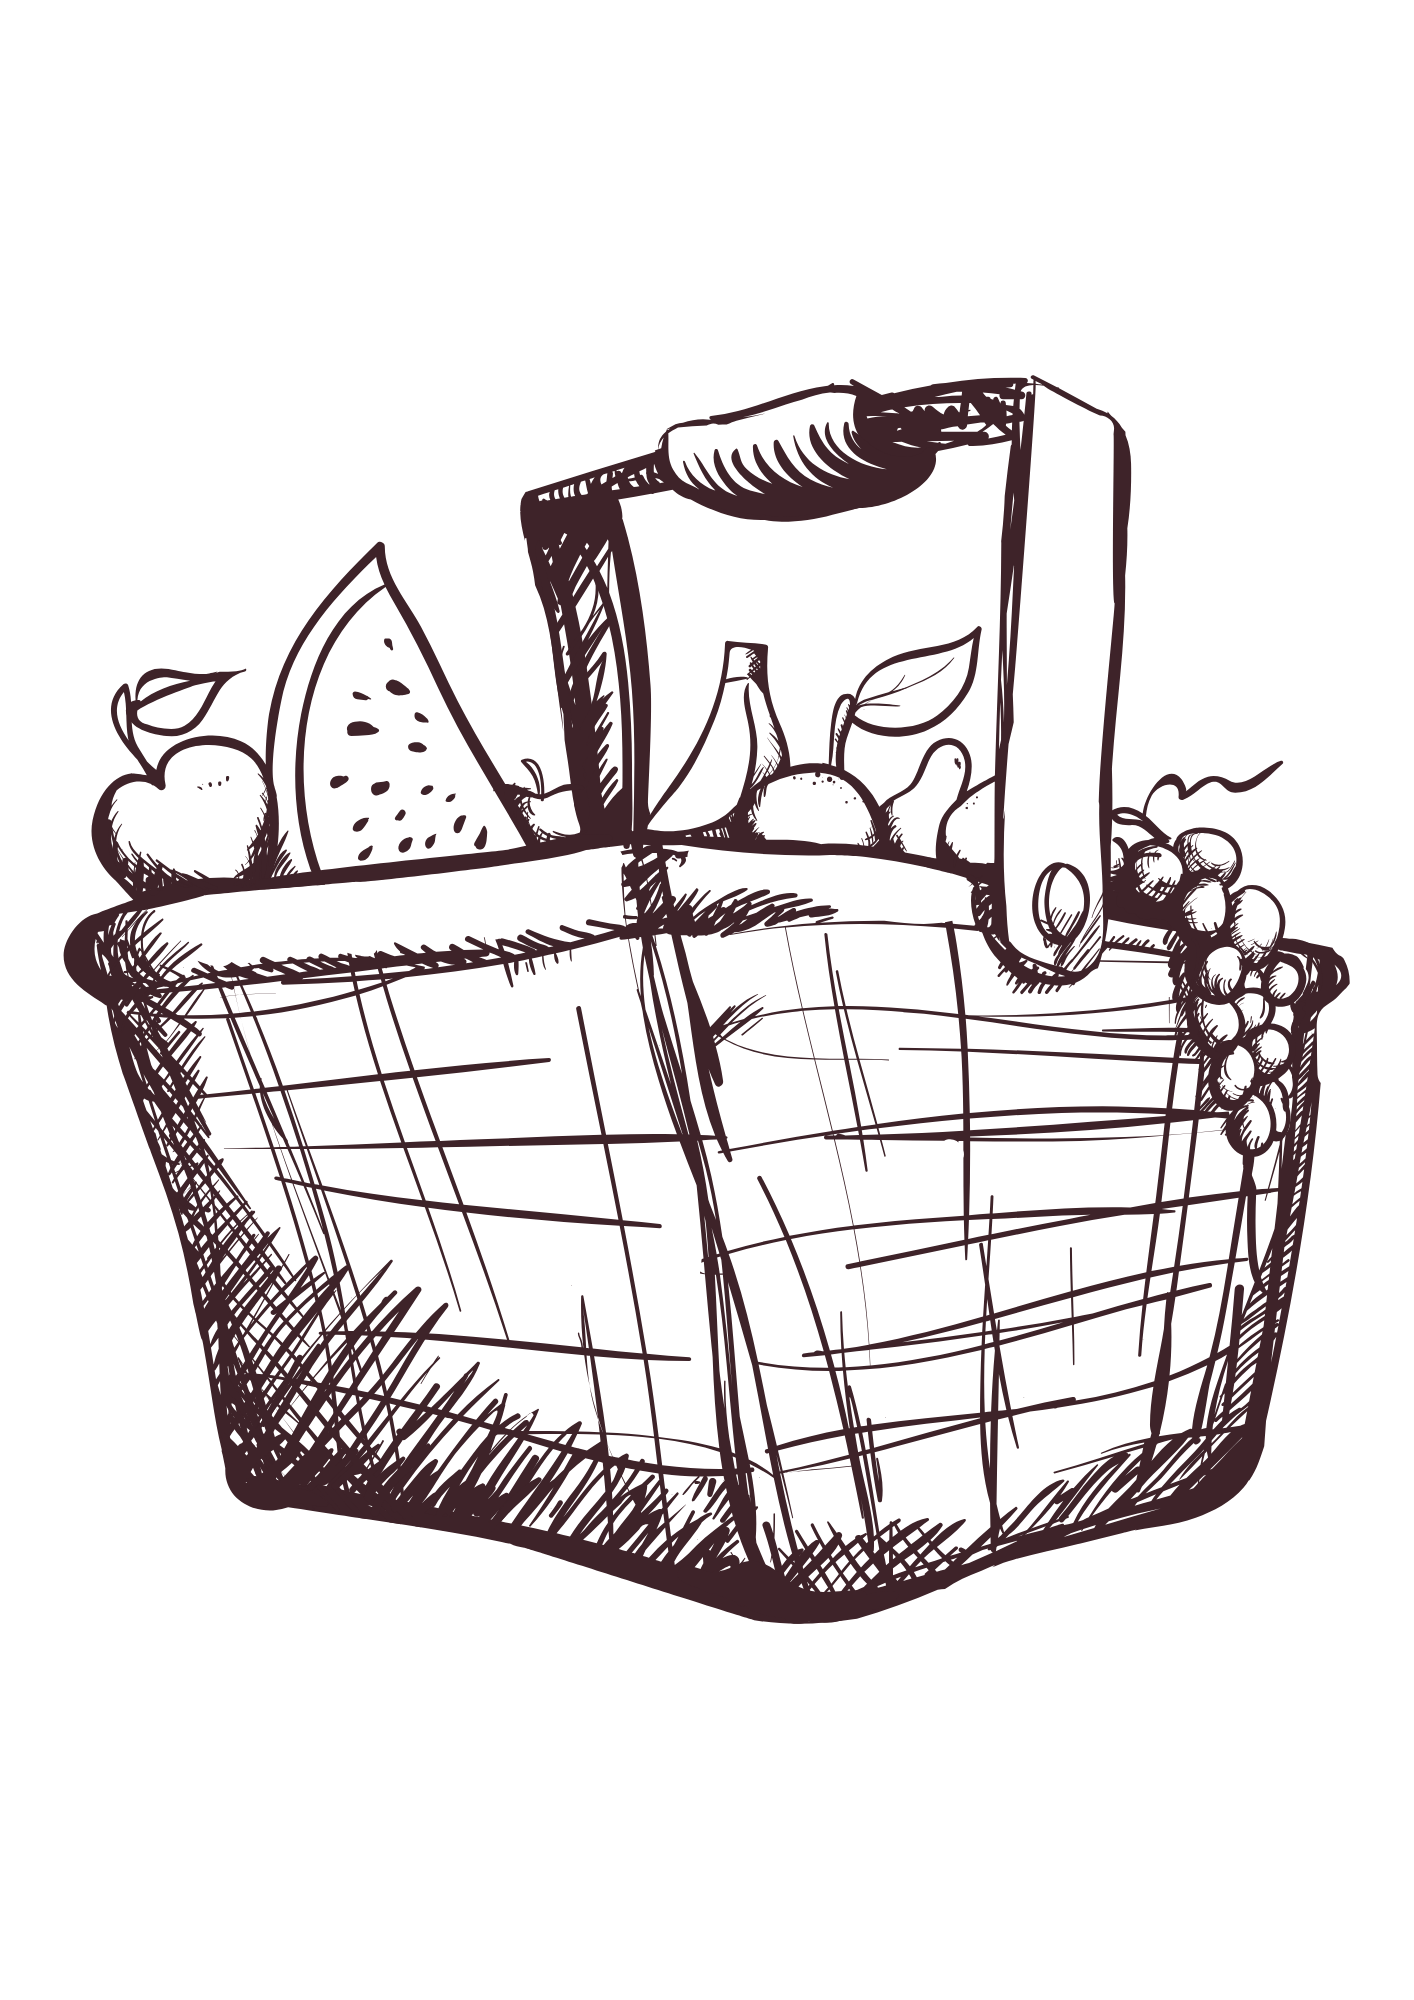 Image of 19th July - PICNIC HAMPER - Sunday Collection - 12:00-14:00